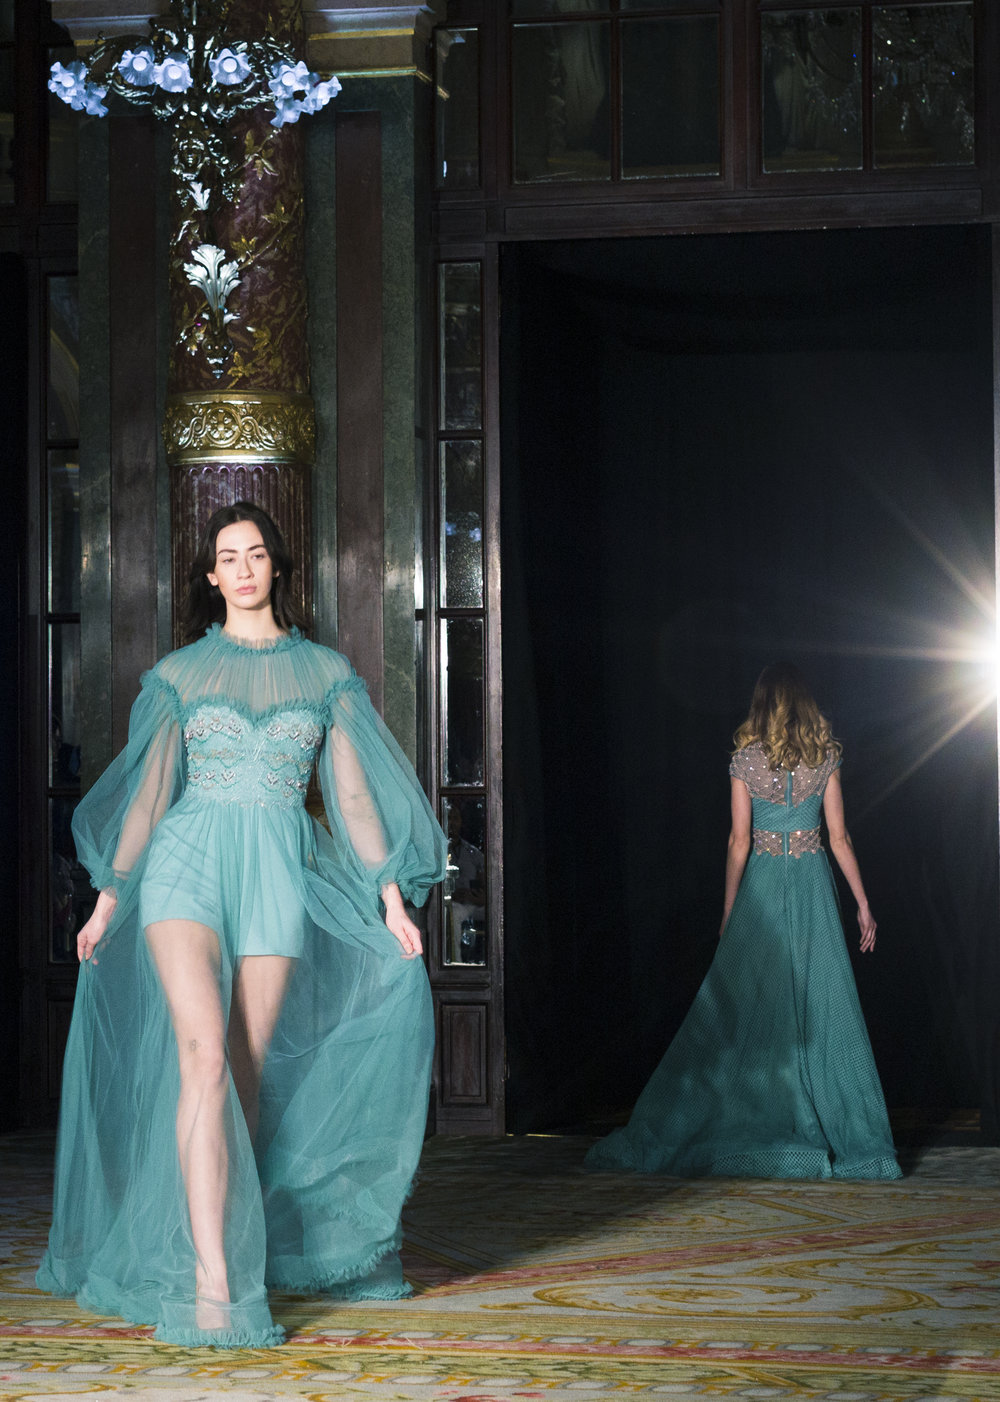 Rouba.G - Welcome to the world of Rouba.G at Le Grand Hôtel de Paris for the Pfw18